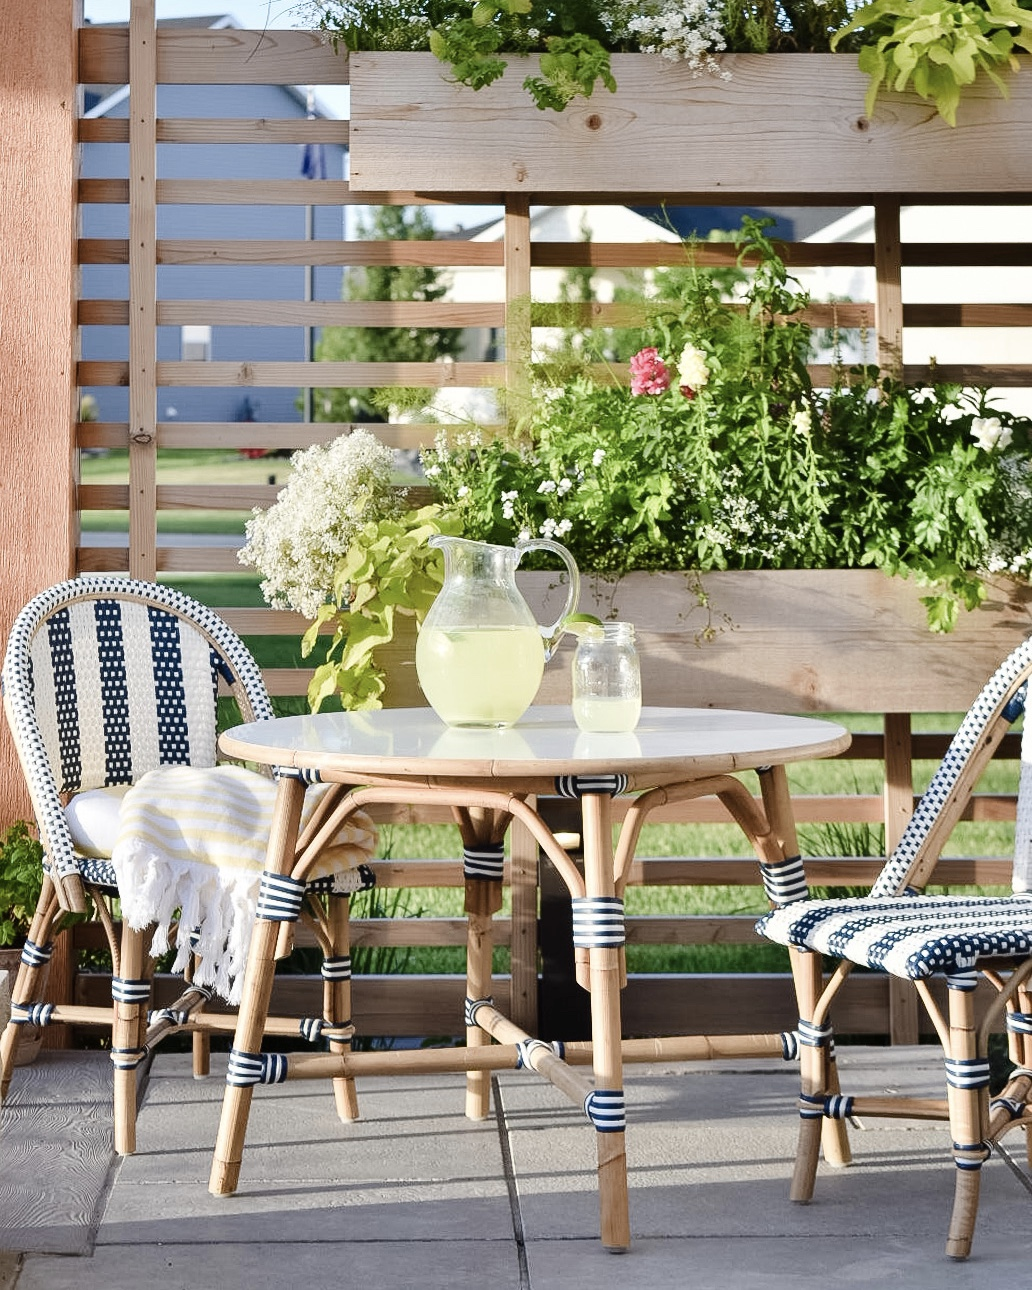 5 Summer Favorites from Serena & Lily - Kids Bistro Table